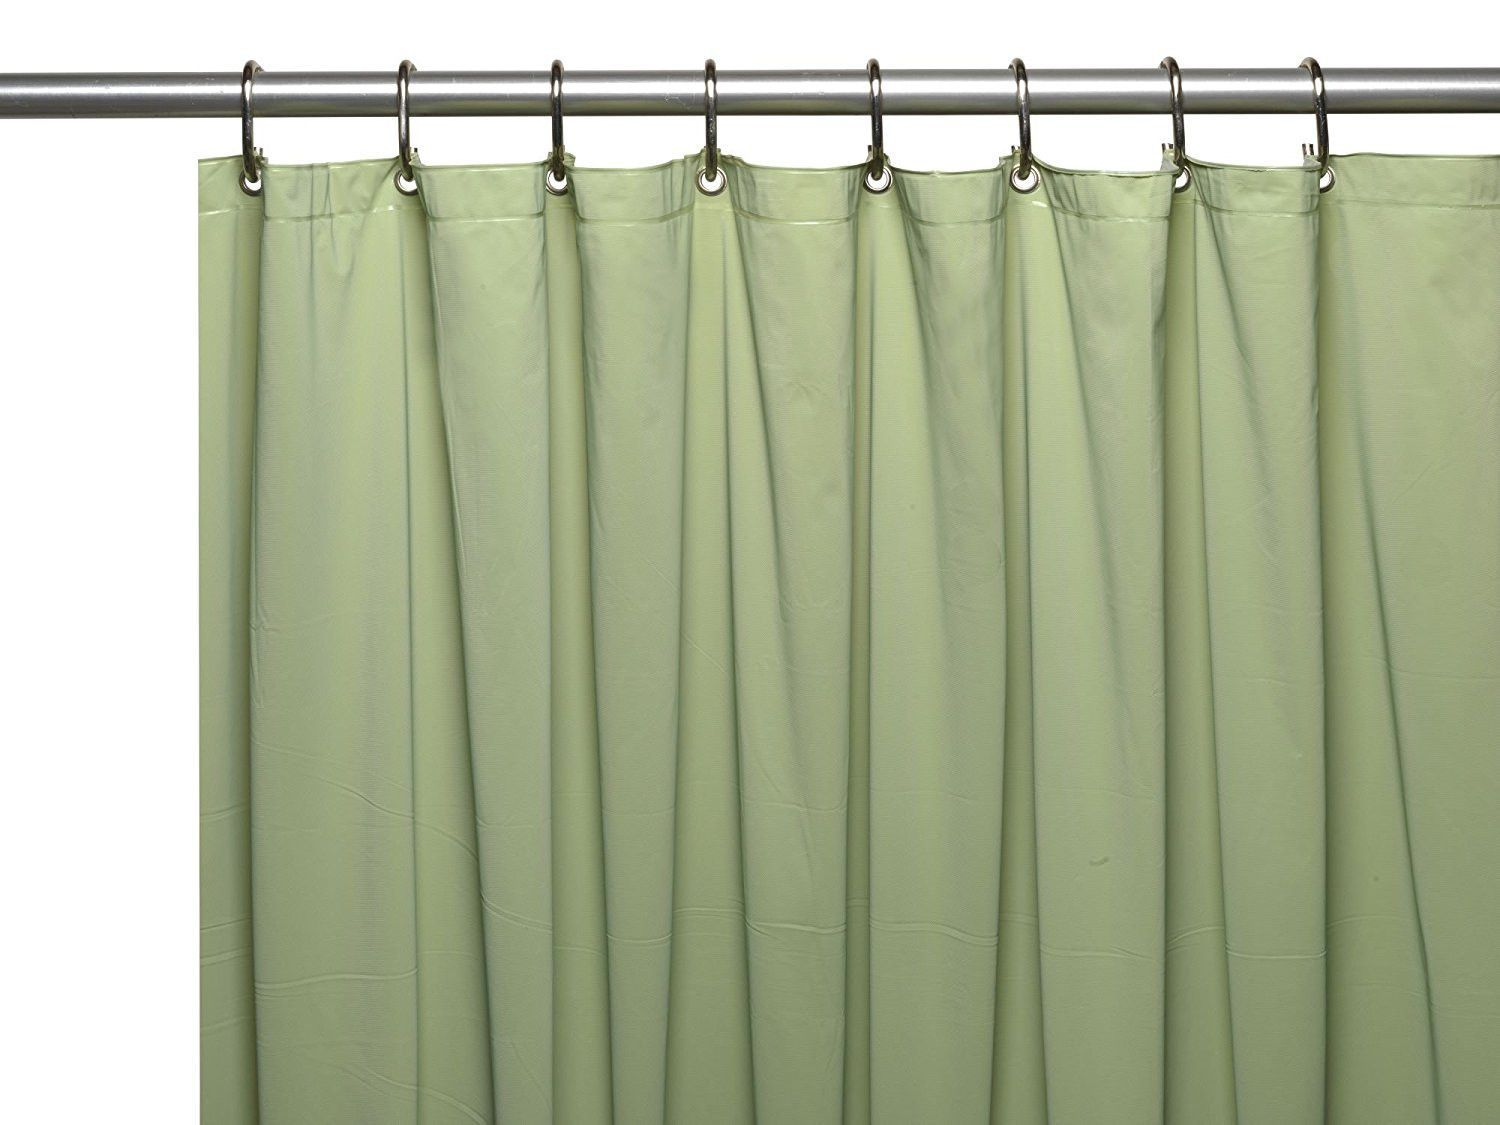 Royal Bath Heavy 4 Gauge Vinyl Shower Curtain Liner With Weighted Magnets  And Metal Grommets (